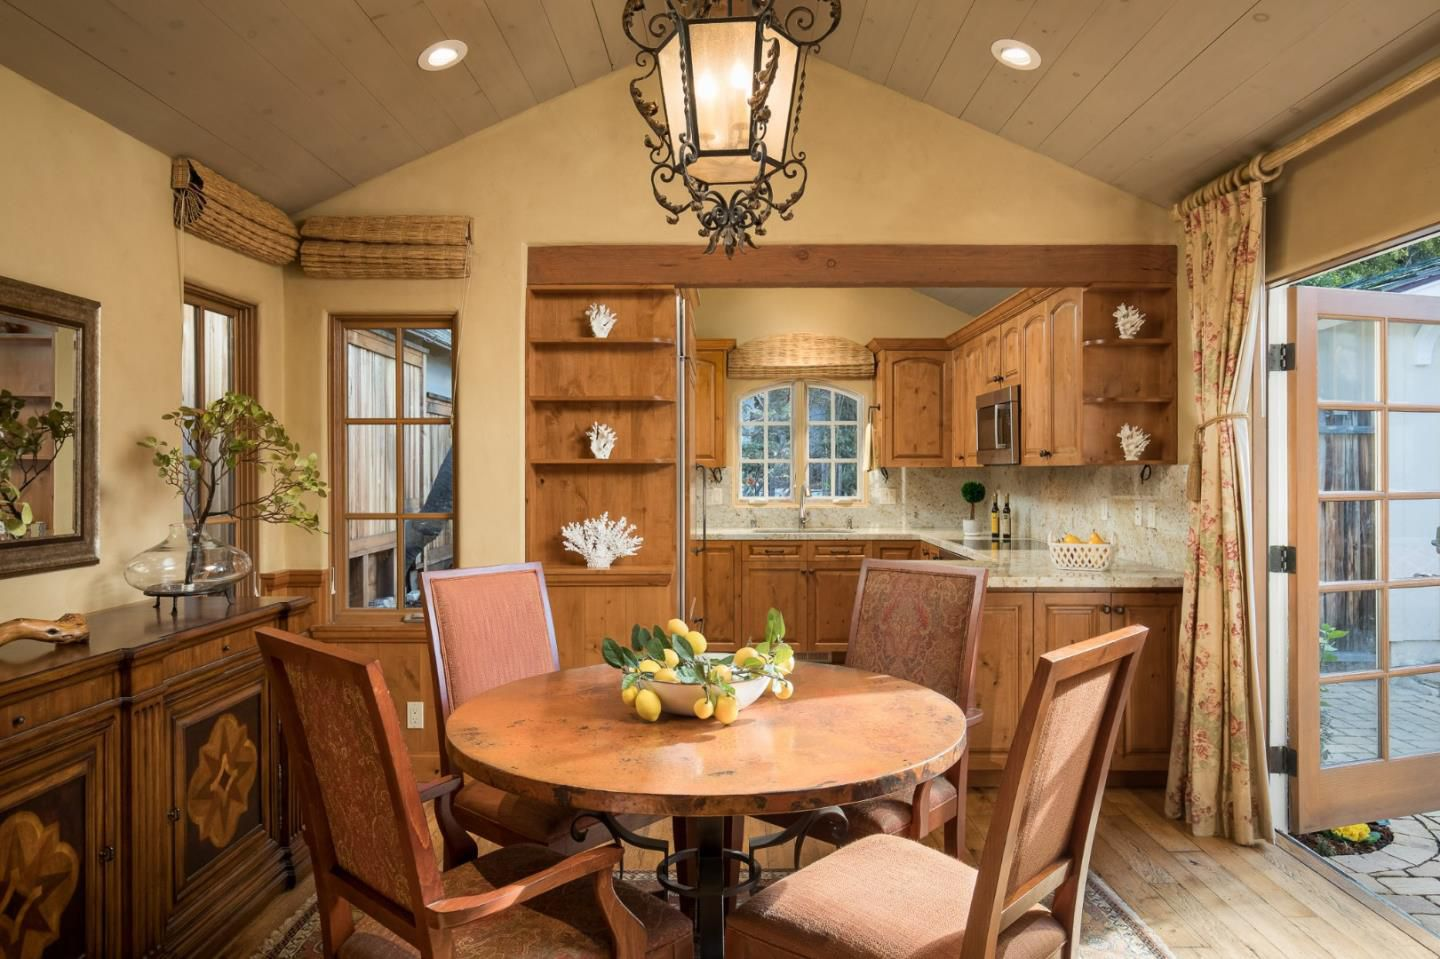 Classic Board and Batten Cottage in Carmel-by-the-Sea for sale -Dining Room with fancy lantern lighting